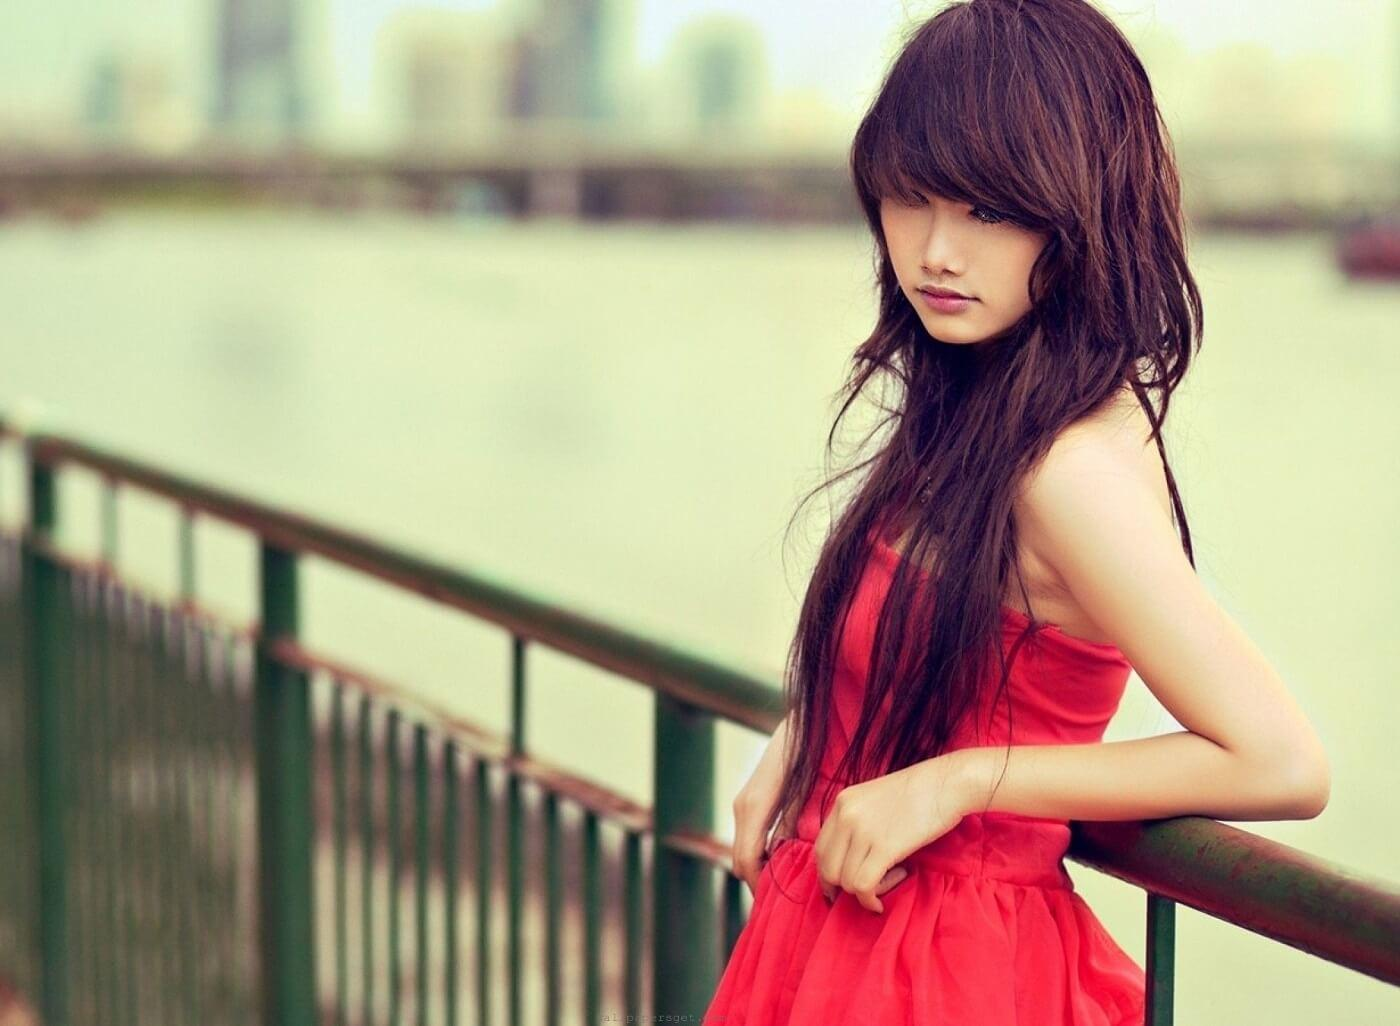 Beautiful Girls Wallpapers Hd For Android Apk Download